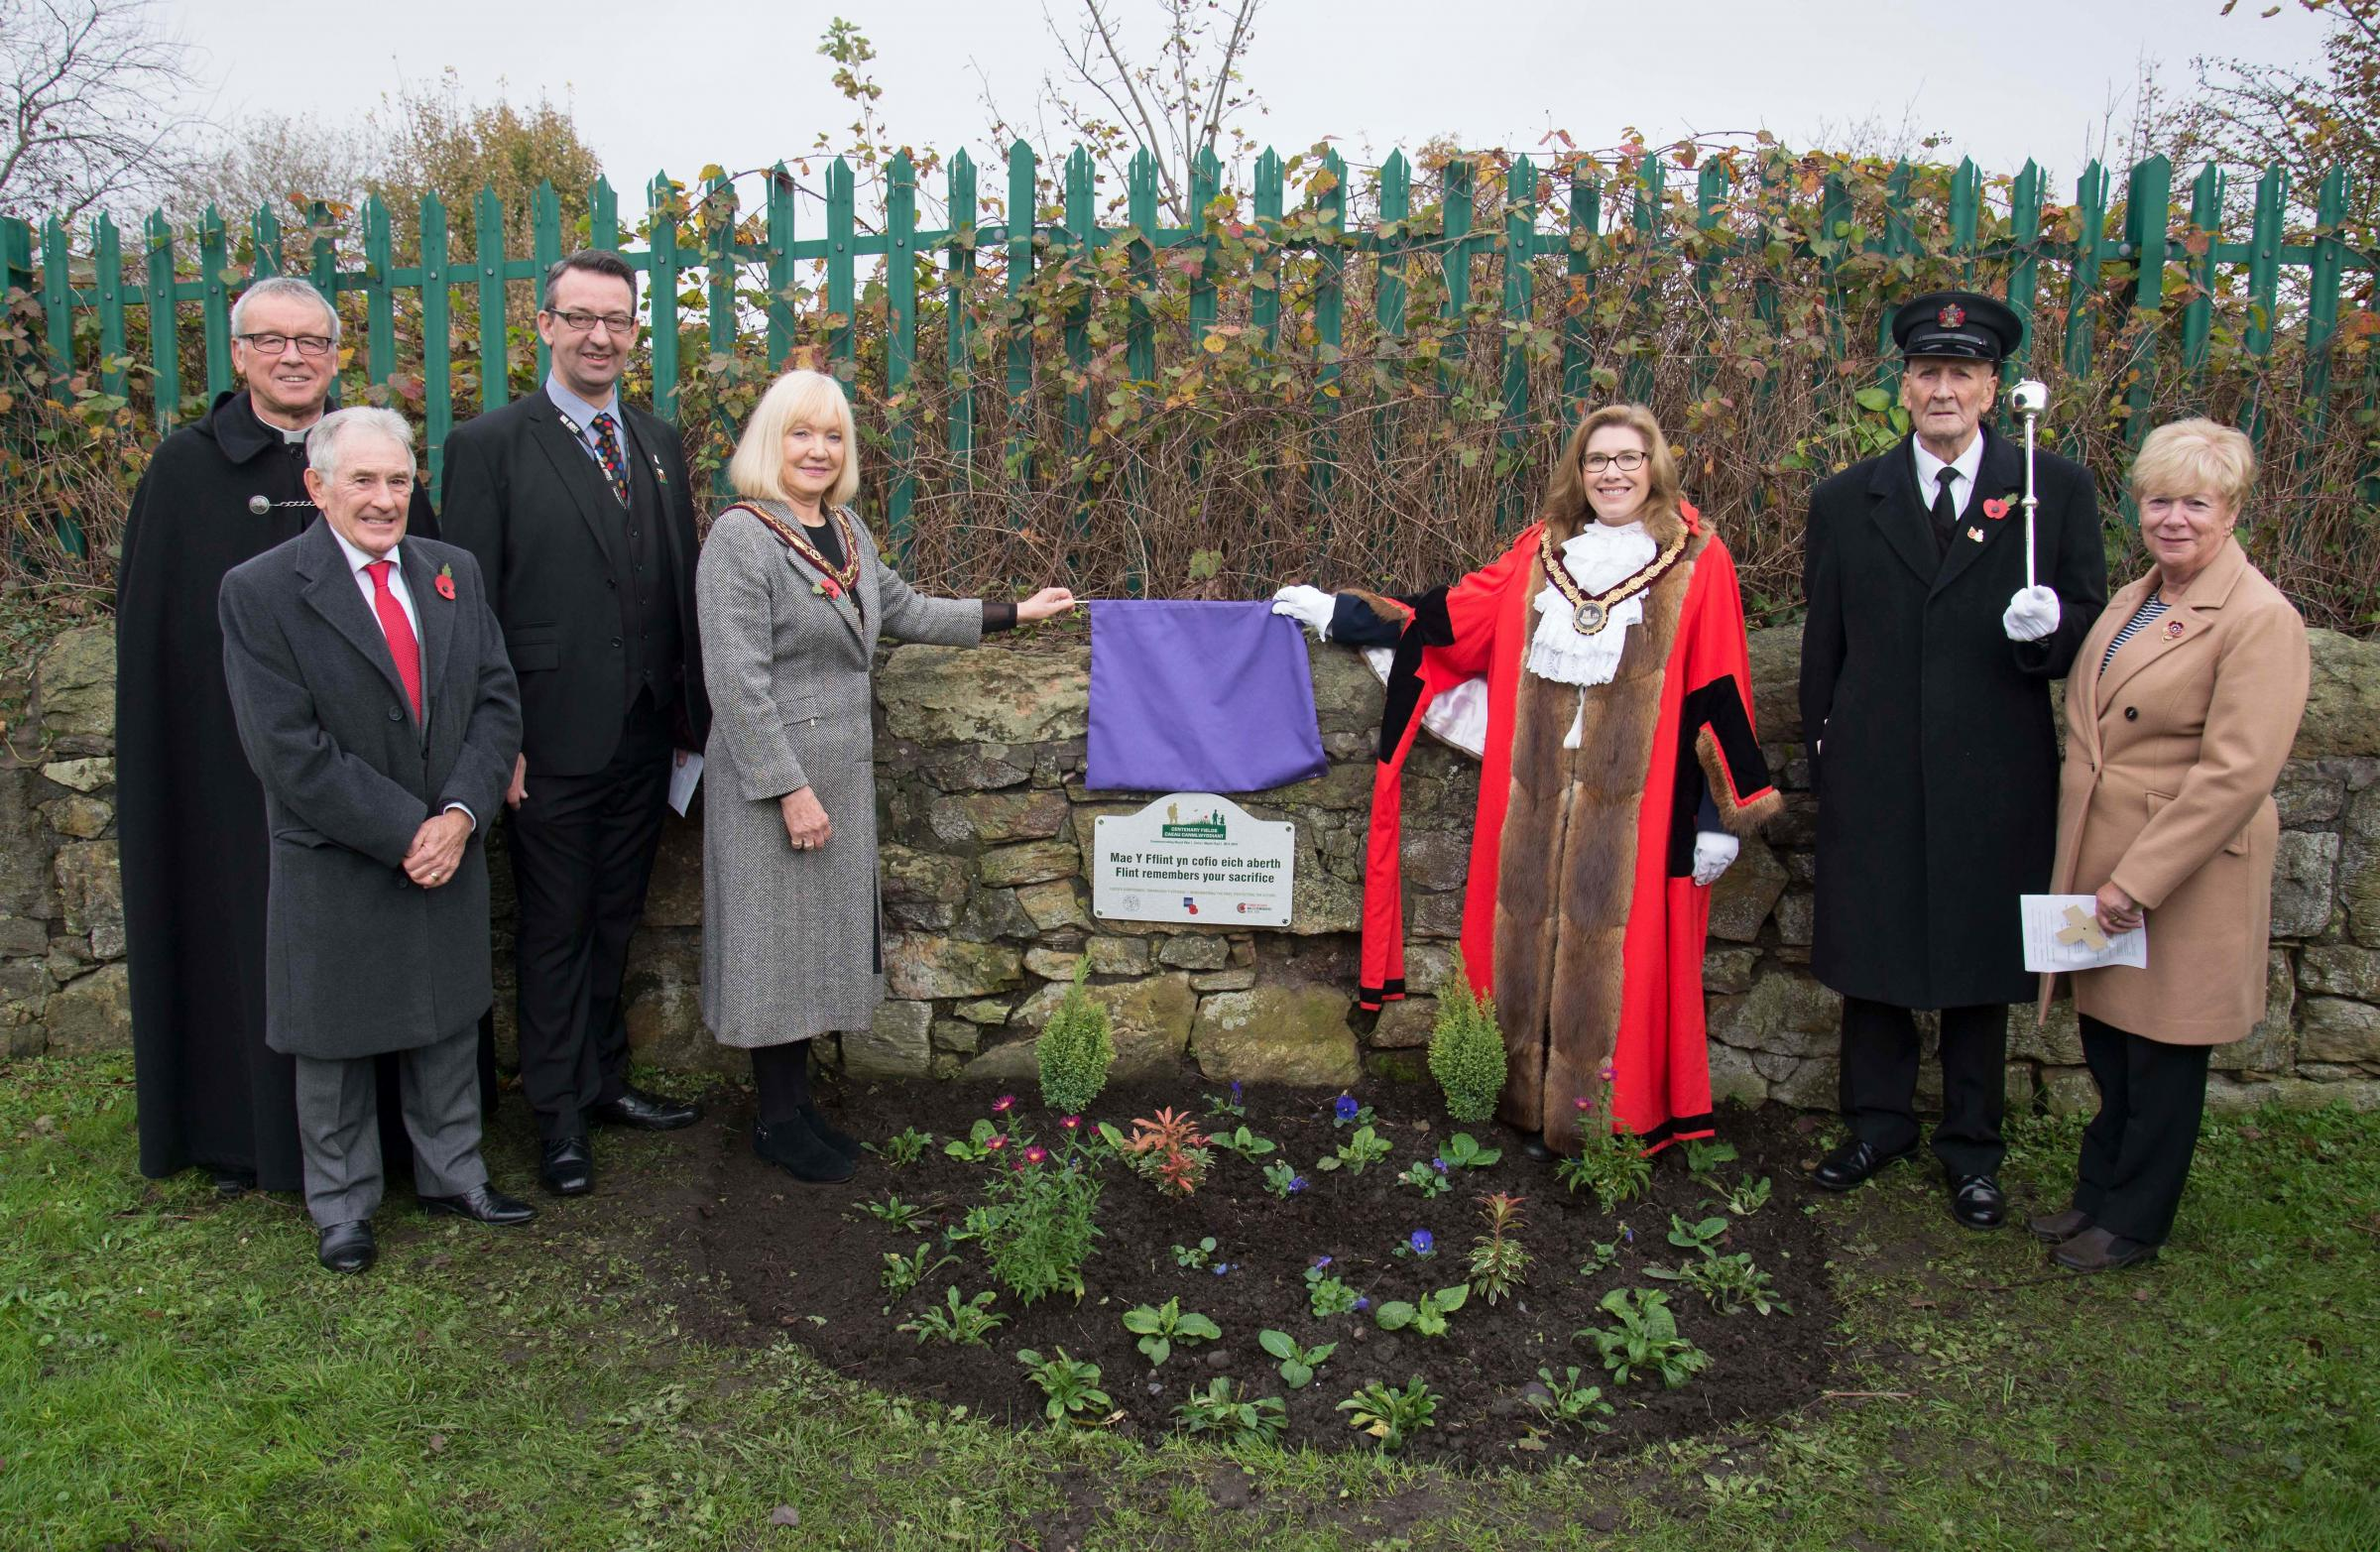 Centenary Field ceremonies dedicated to 'World War One generation' of Flintshire